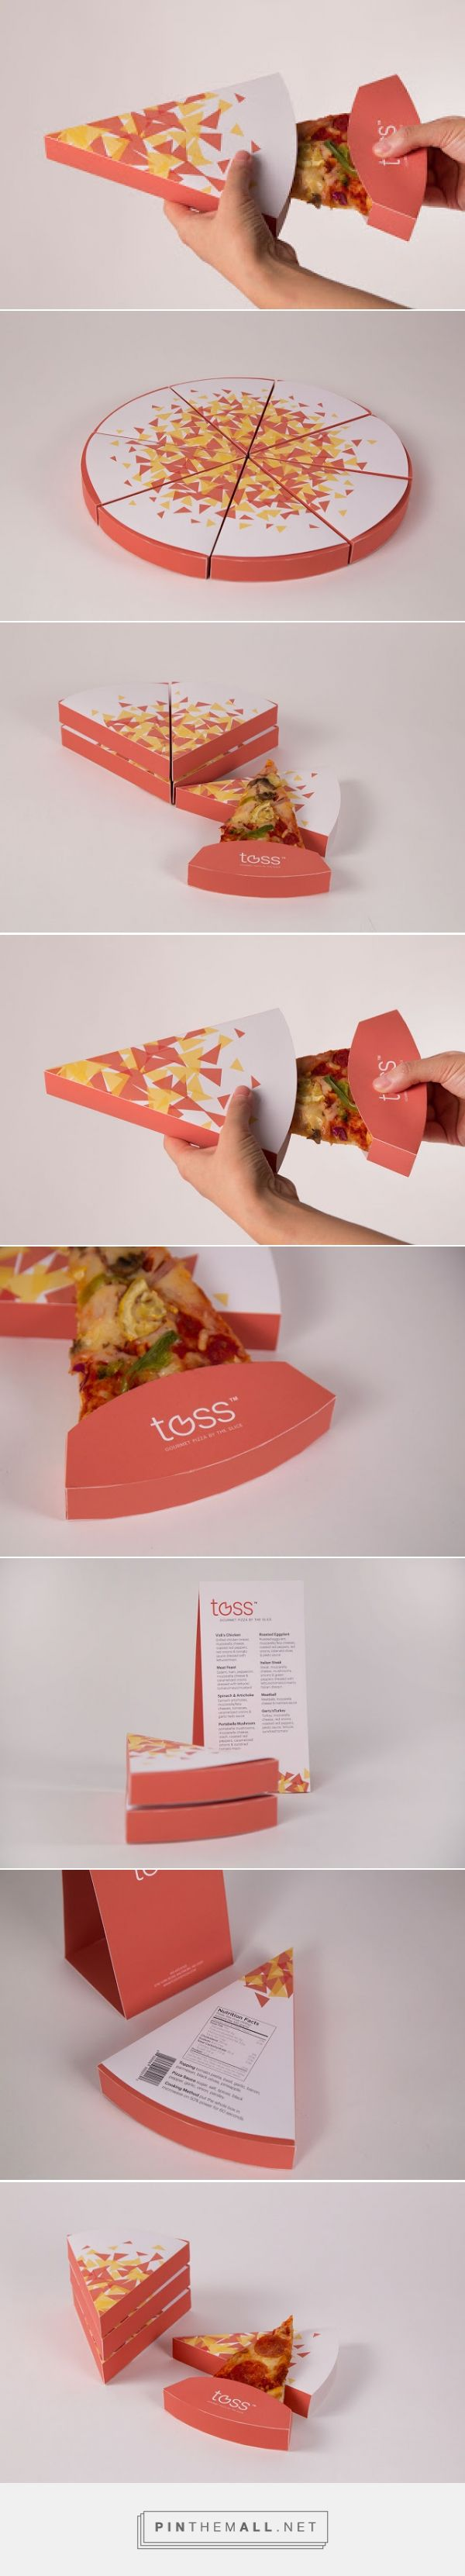 Toss - Gourmet Pizza By The Slice (Student Project) on Packaging of the World - Creative Package Design Gallery... - a grouped images picture - Pin Them All